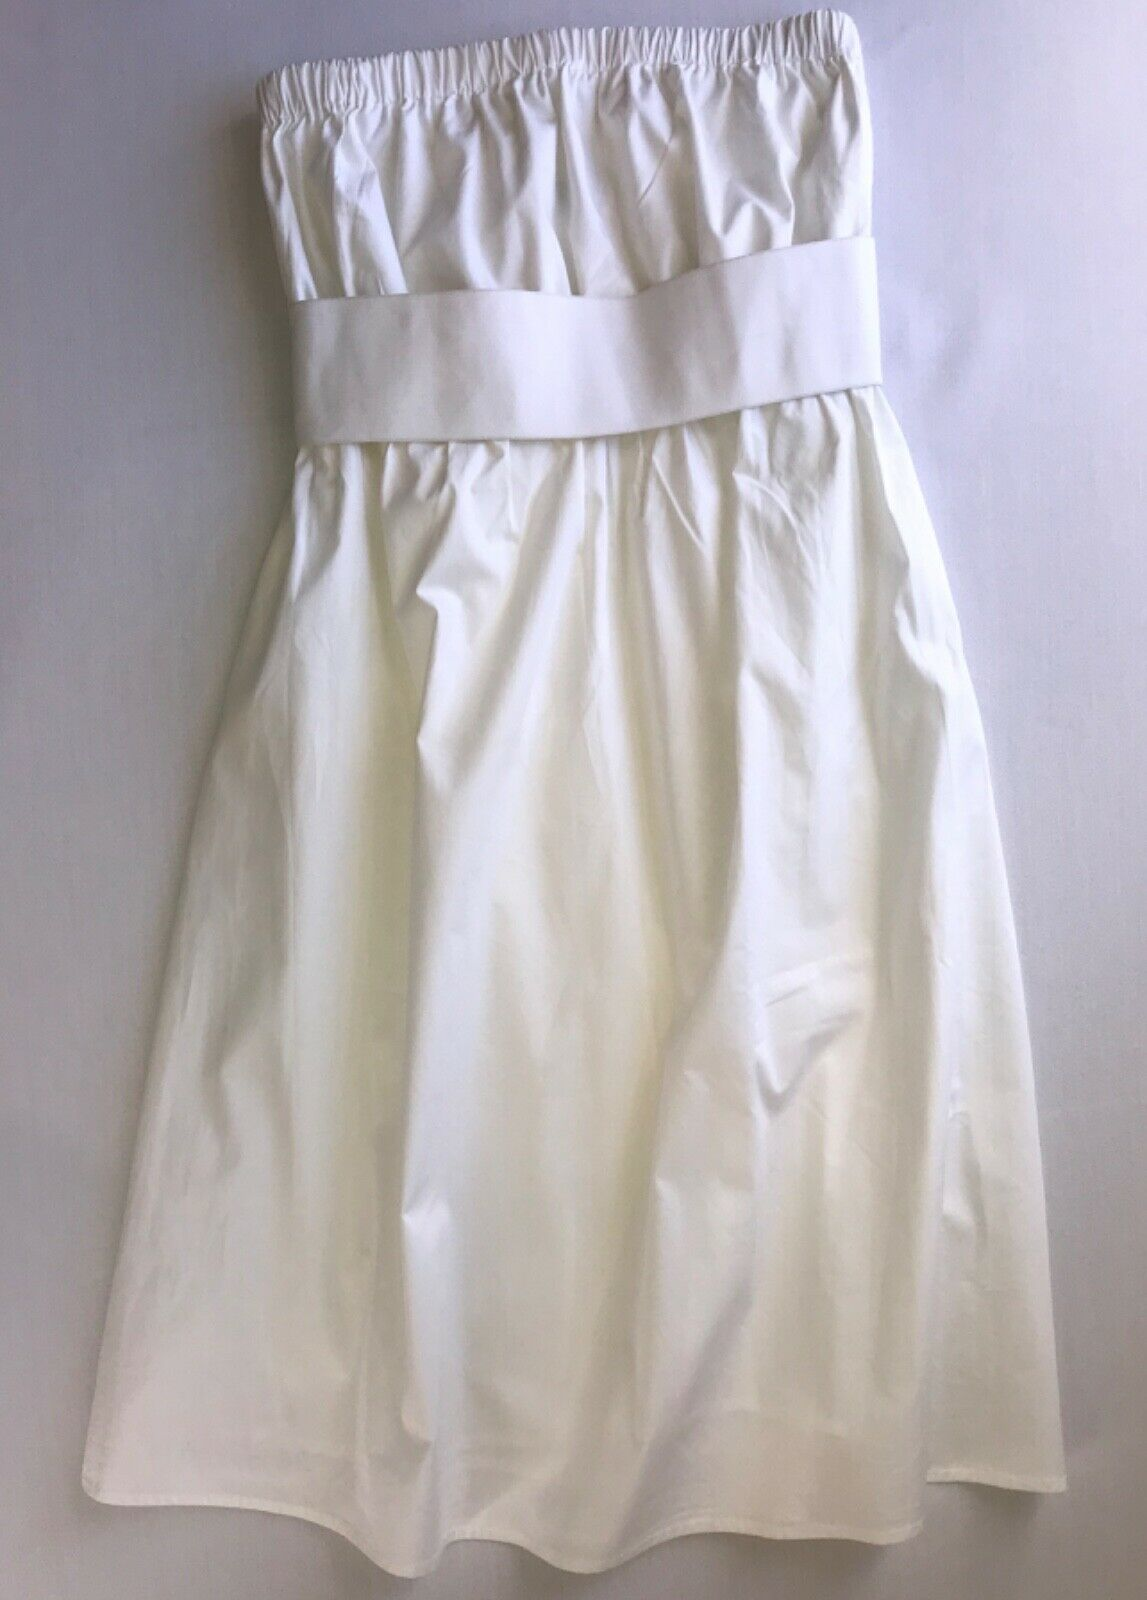 Primary image for Strapless White Belted Shift Dress in size Small by Daisy Fuentes